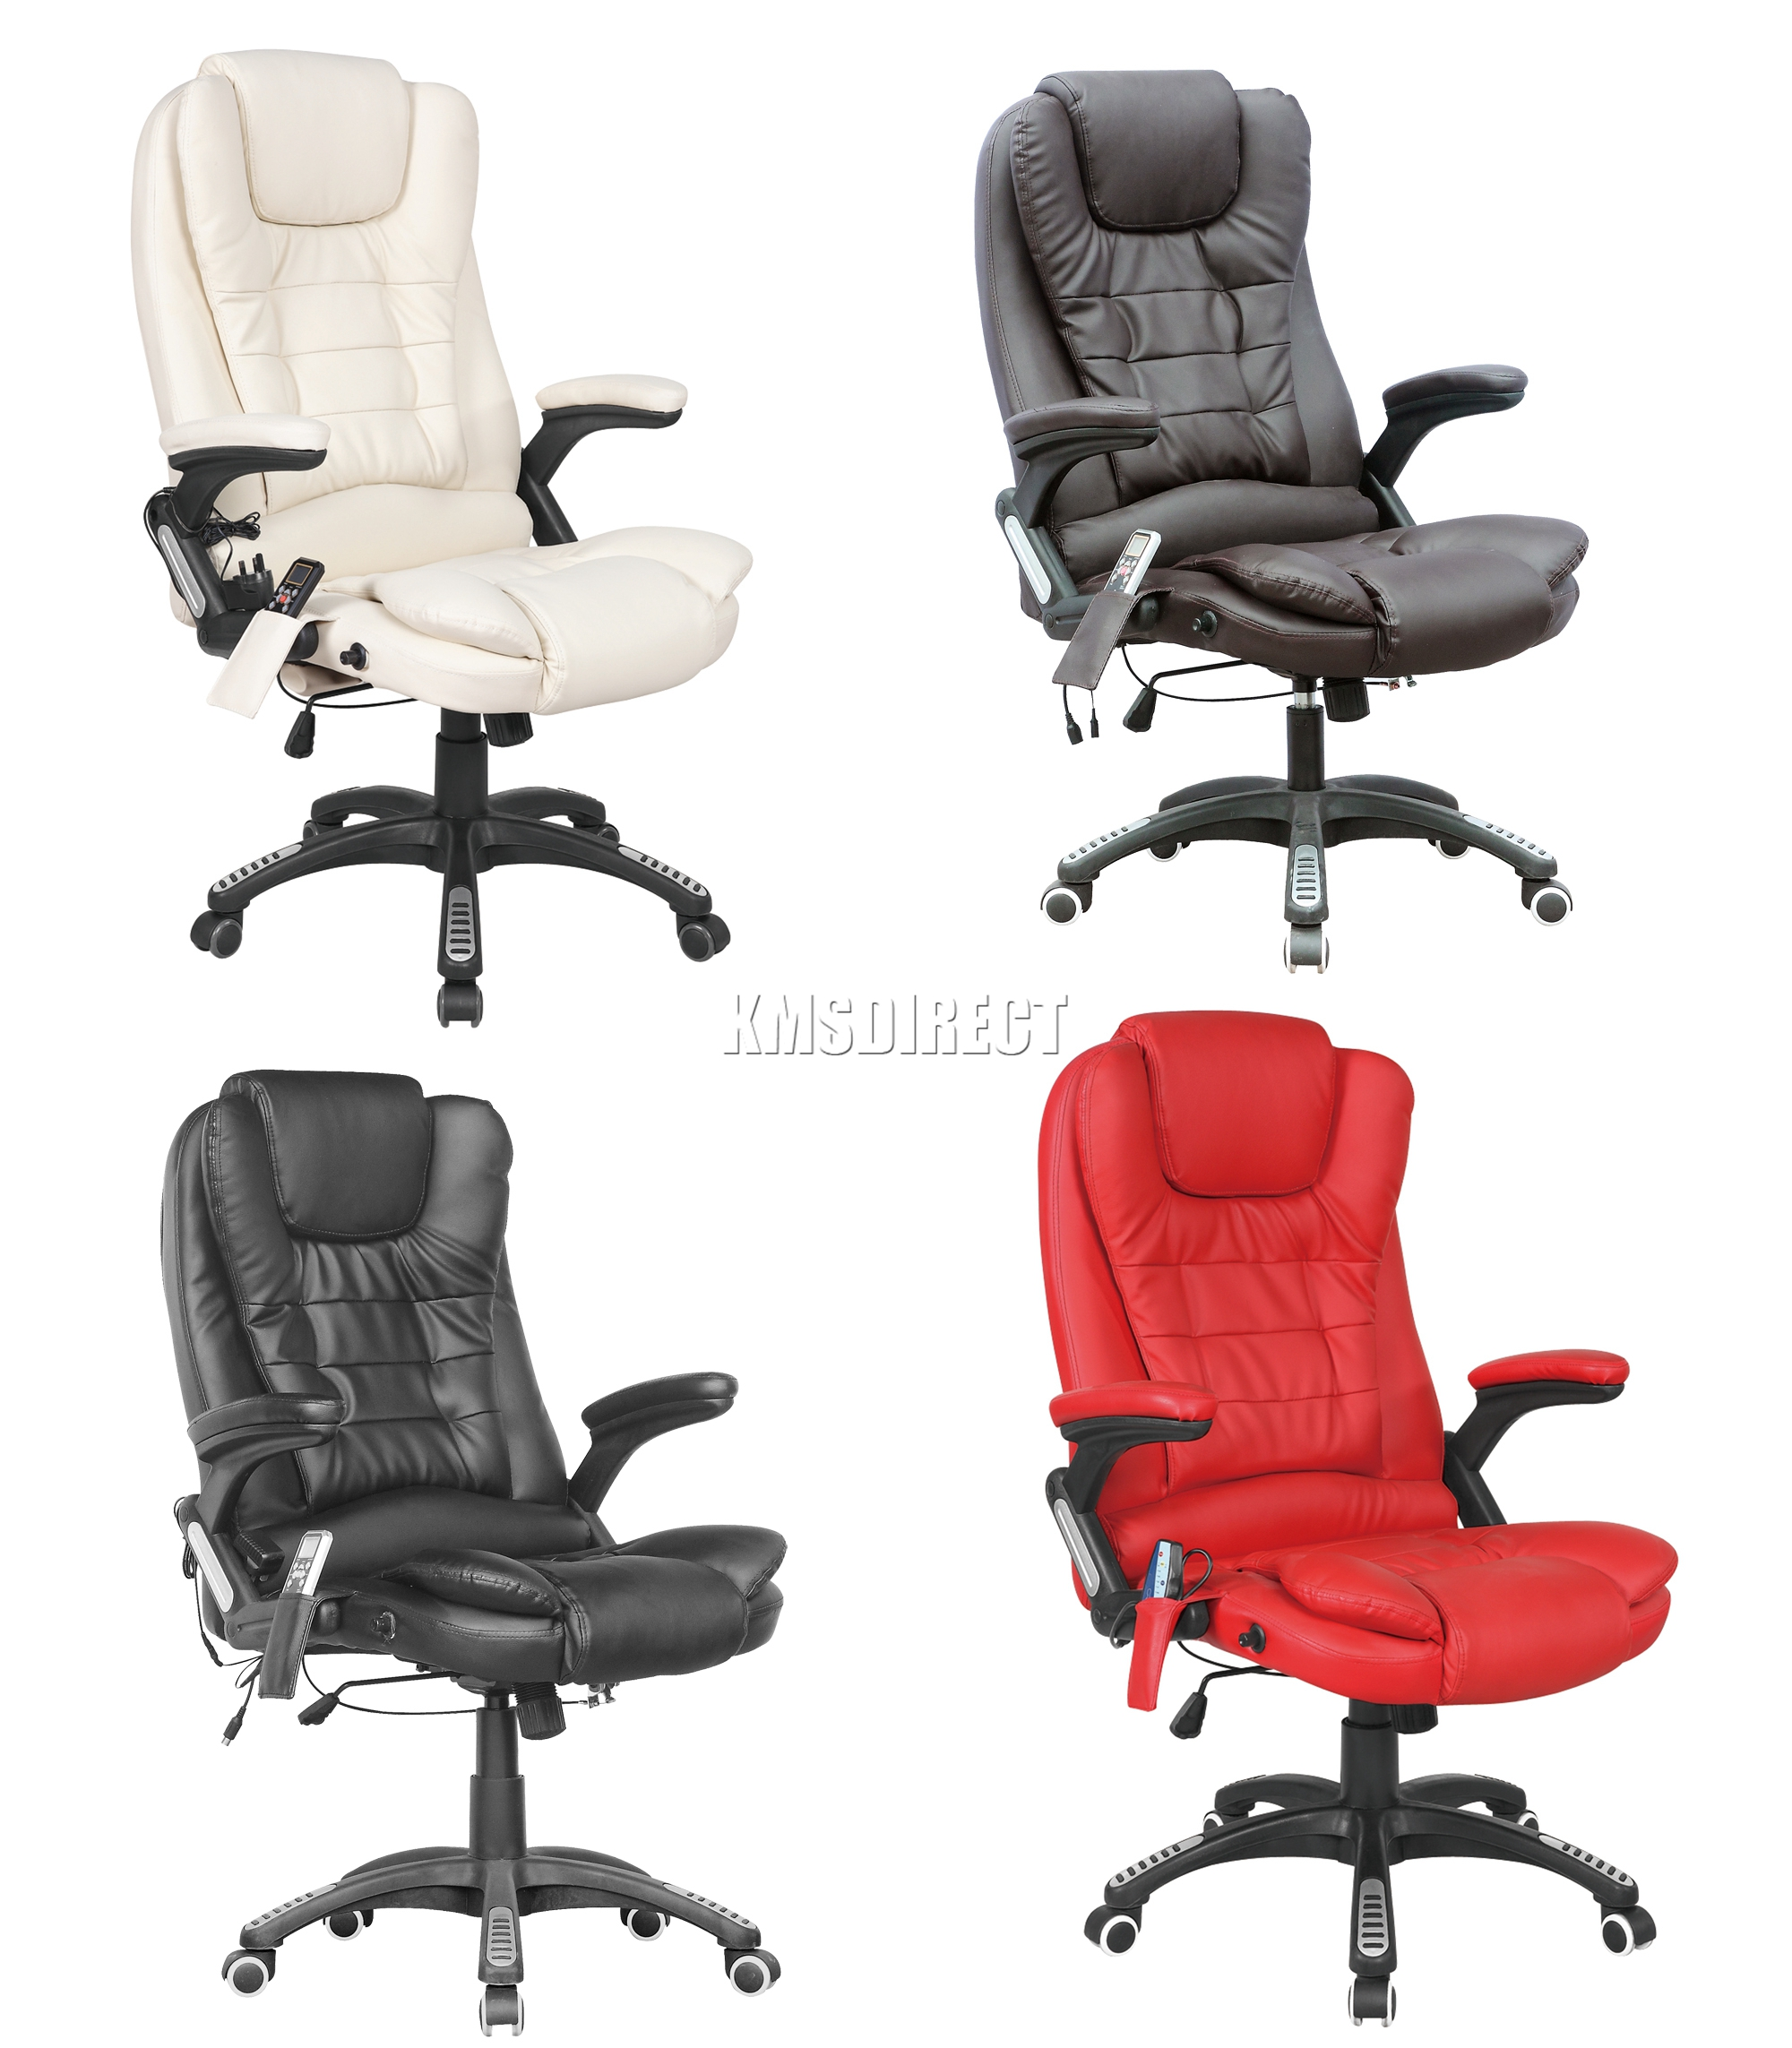 Sentinel Foxhunter 8025 Leather 6 Point Mage Office Computer Chair Reclining Swivel